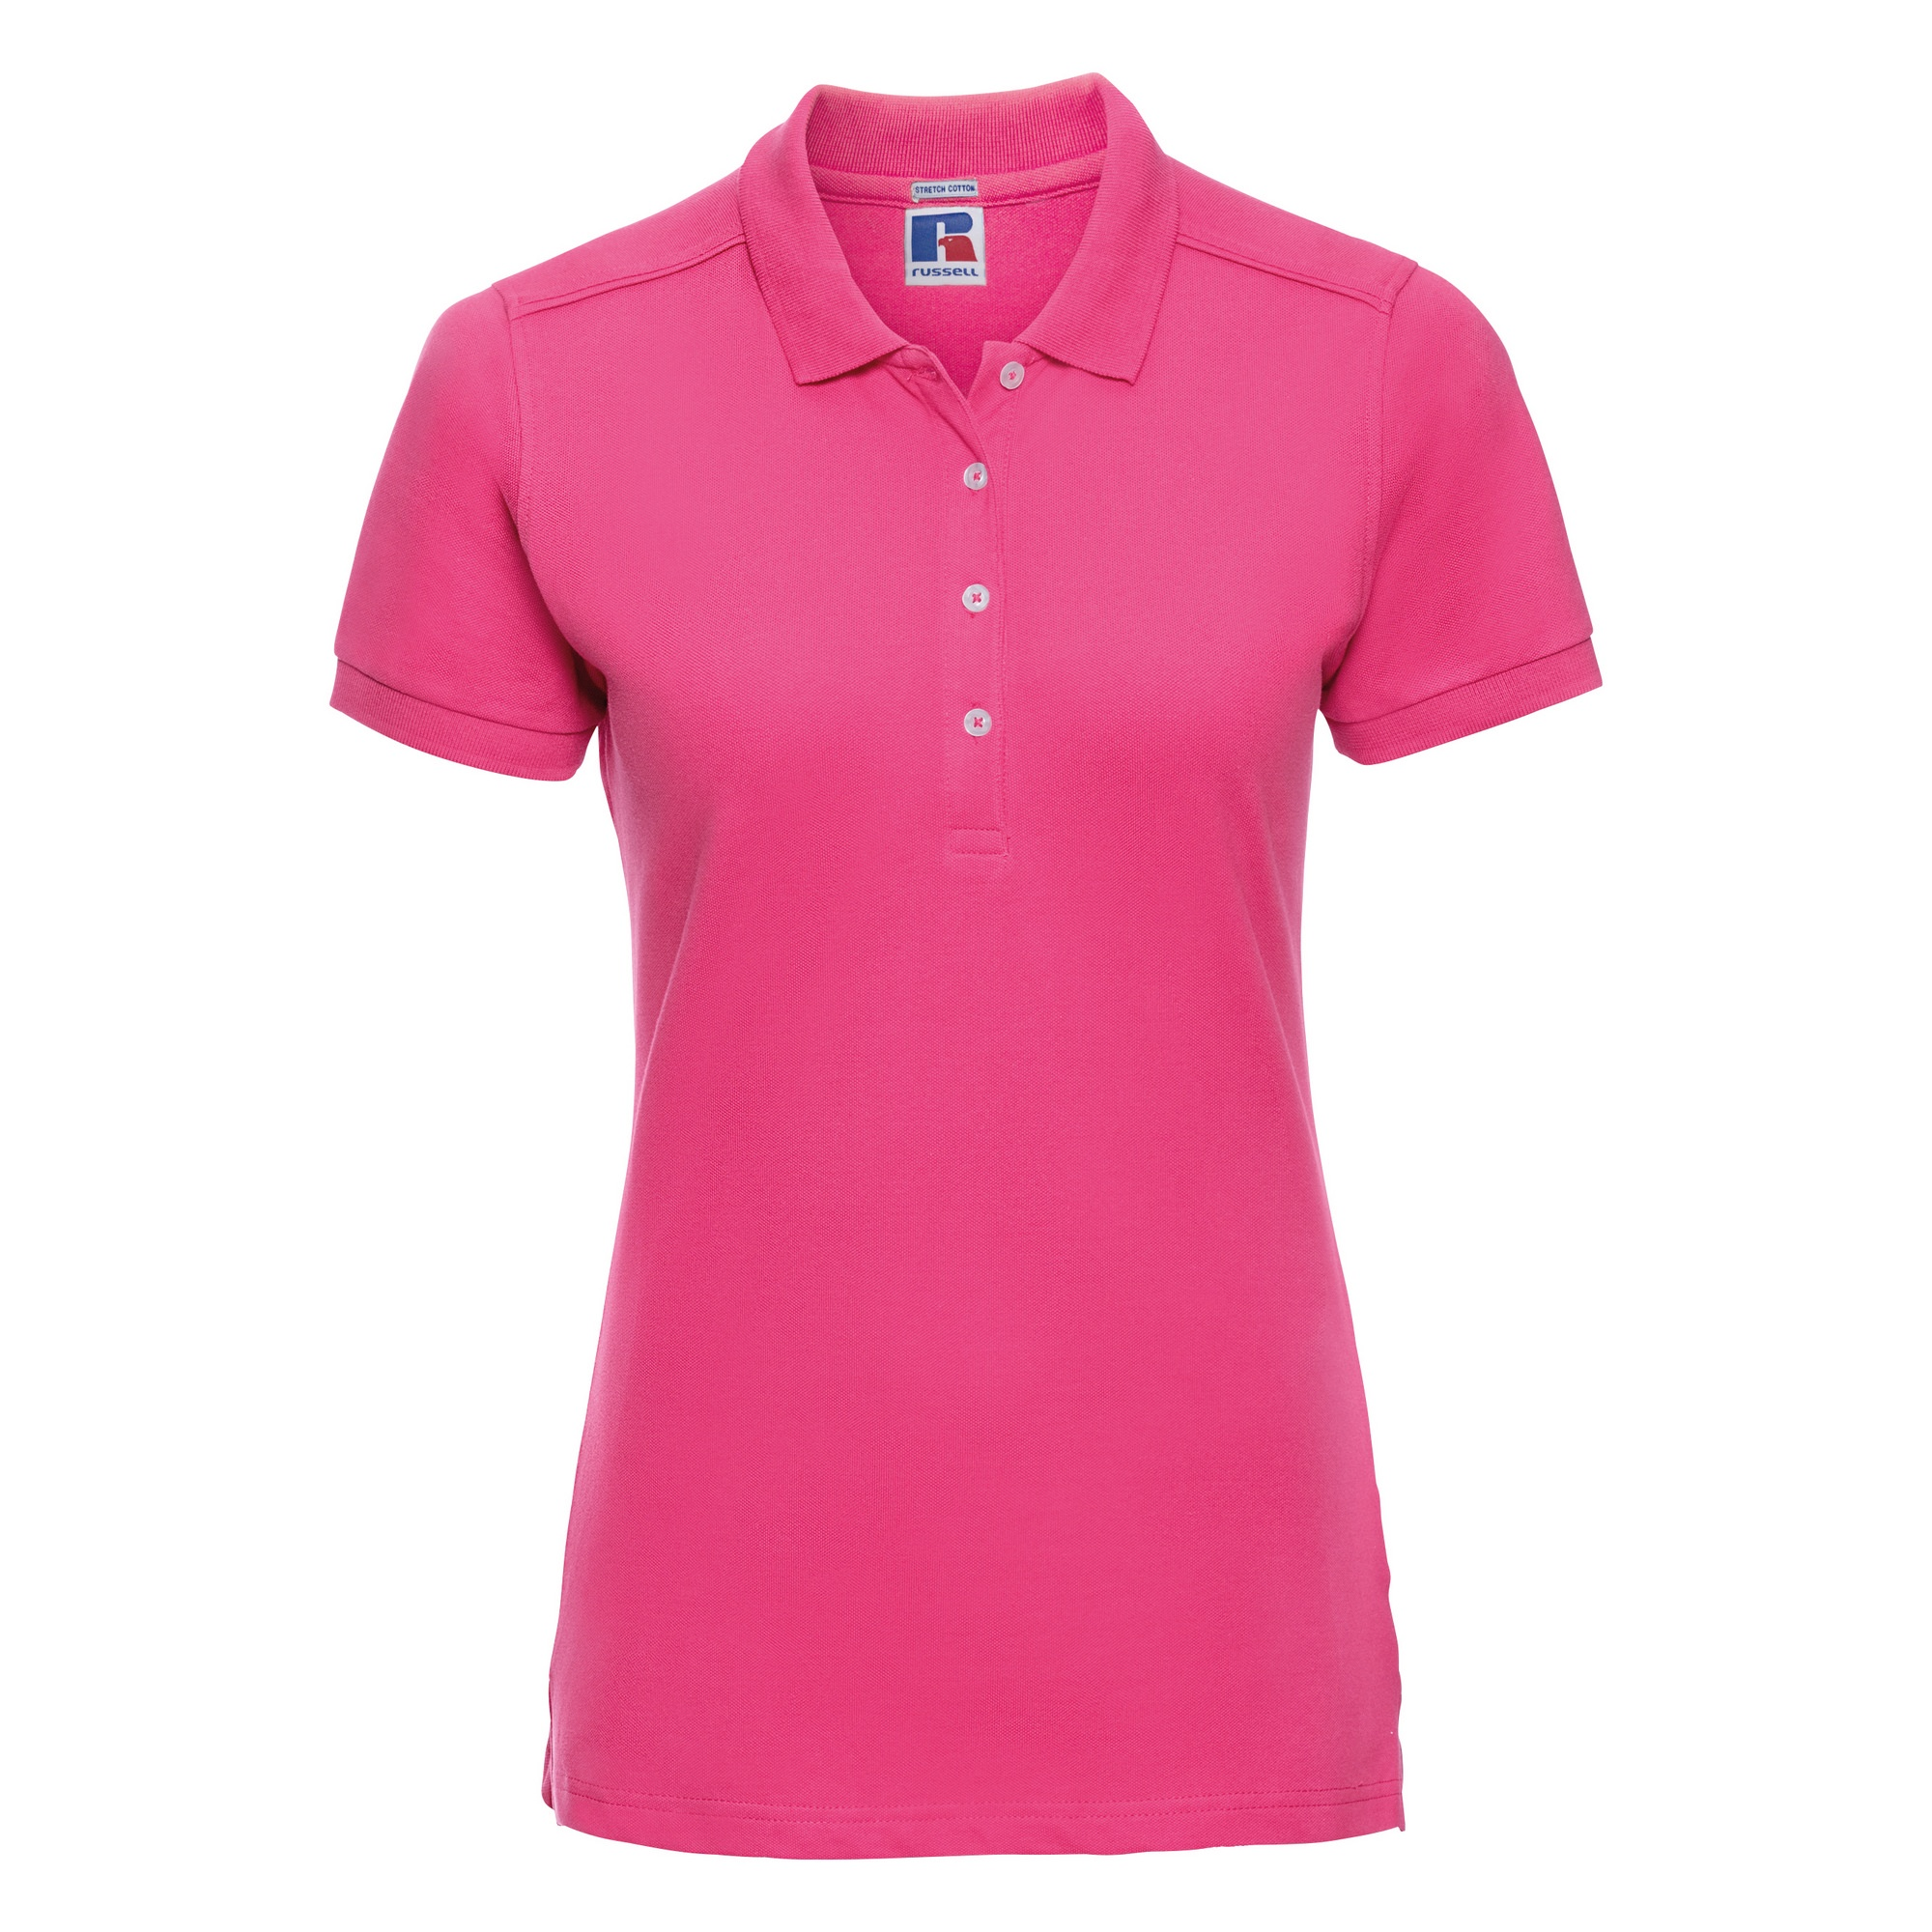 Russell Womens Ladies Stretch Short Sleeve Polo Shirt Ebay